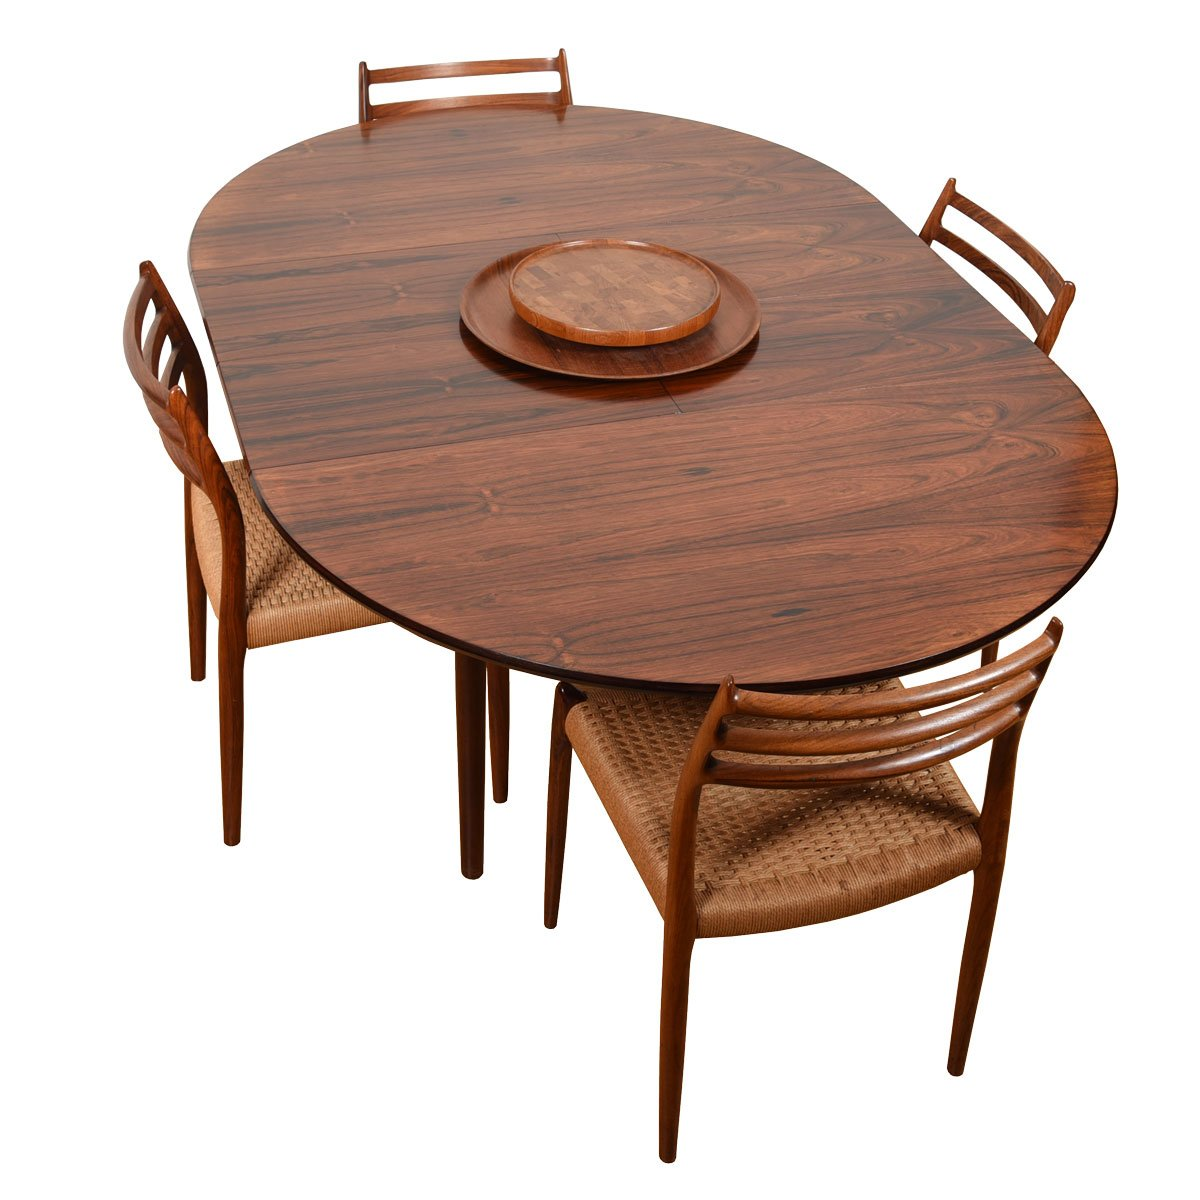 Early Danish Rosewood 47″ Round-to-Oval Dining Table w/ Butterfly Leaves.